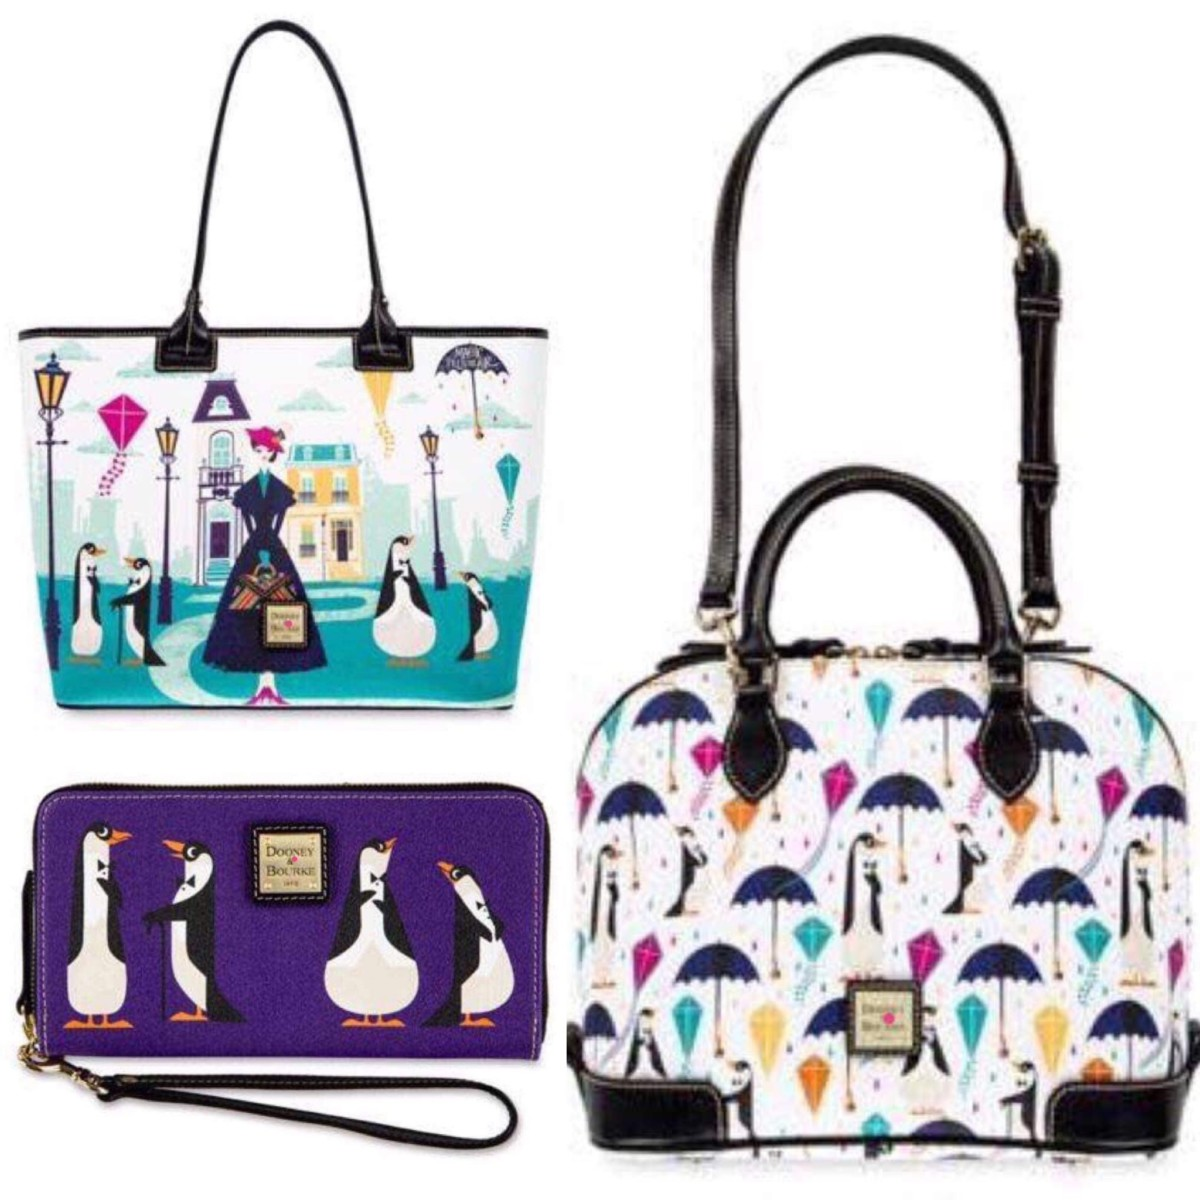 A new line Of Mary Poppins Dooney and Bourke blowing our way soon - by Lindsey 2